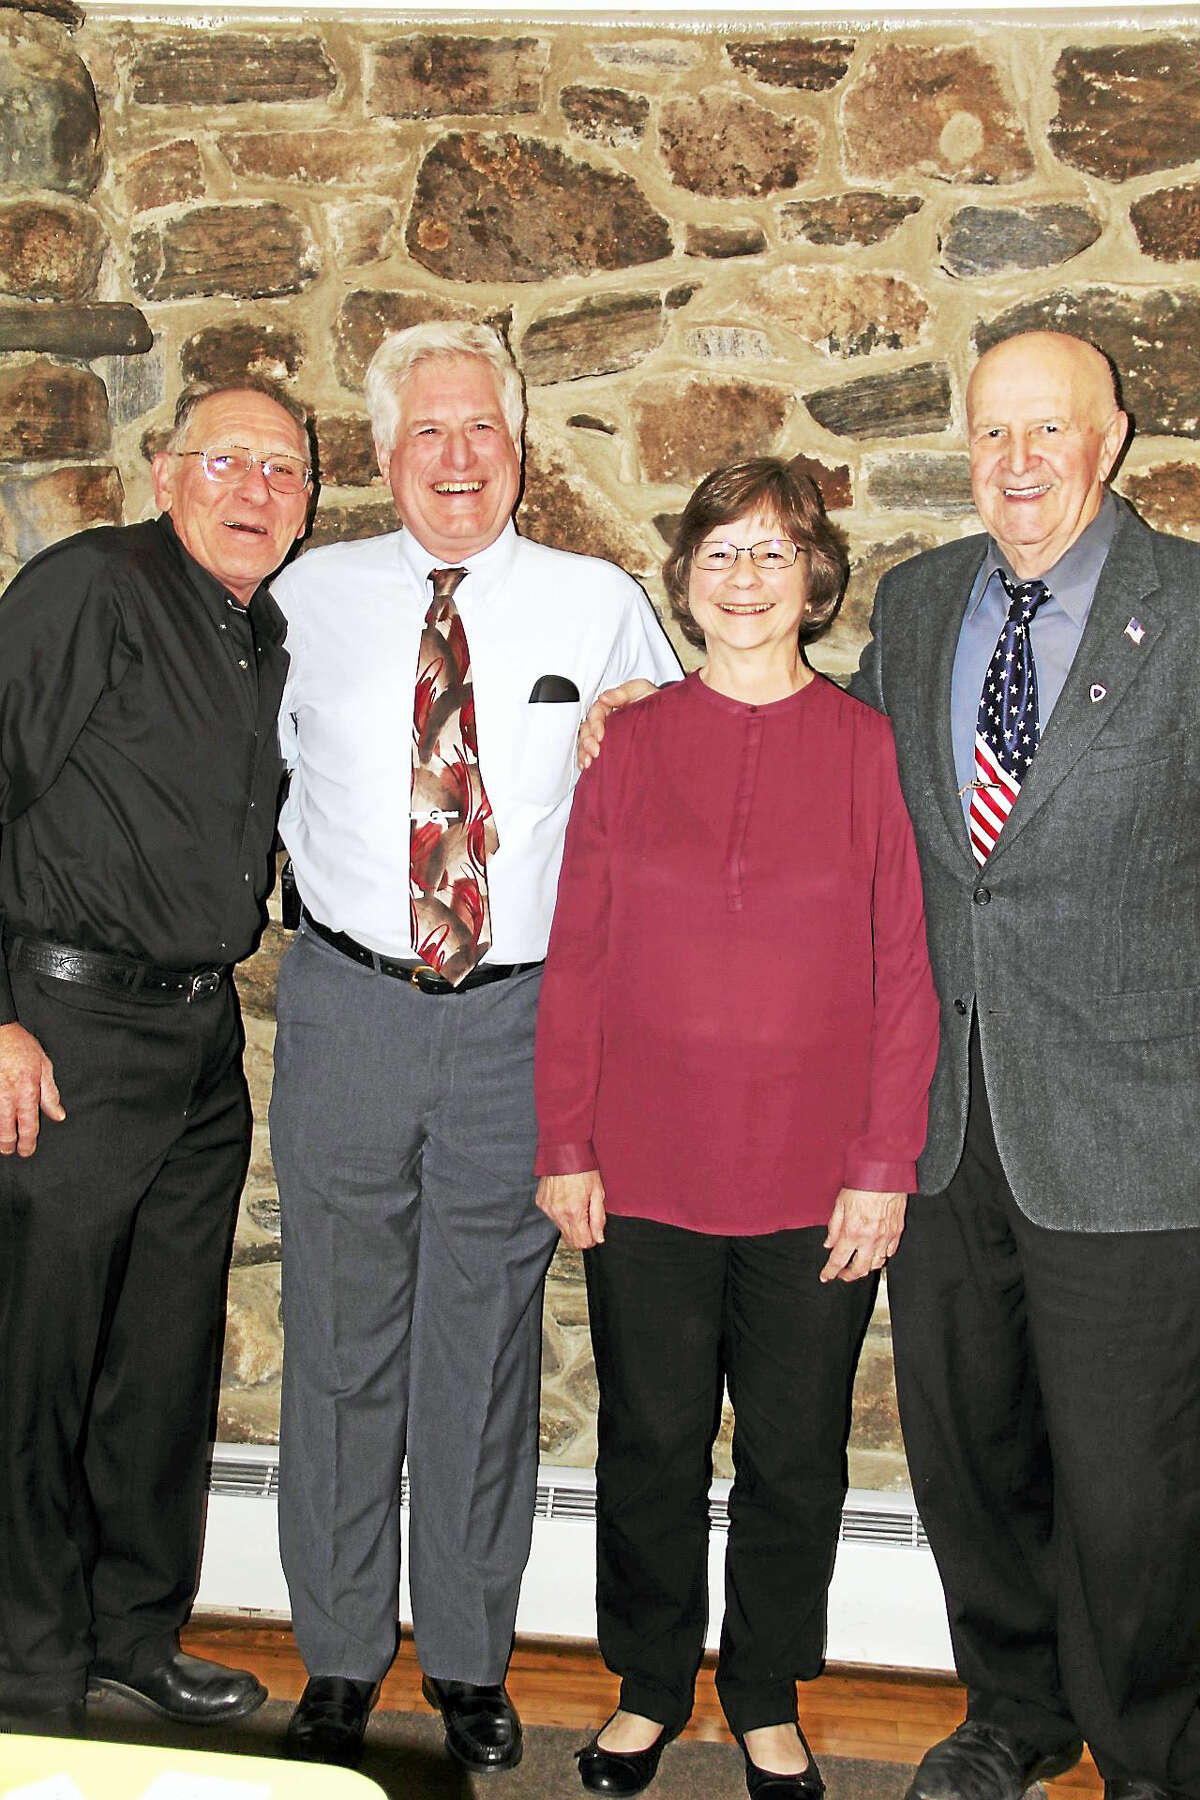 Photo by Anita Garnett From left are award recipients Art Melchyer, Peter and Noreen Marchand and Moe Gabelmann.